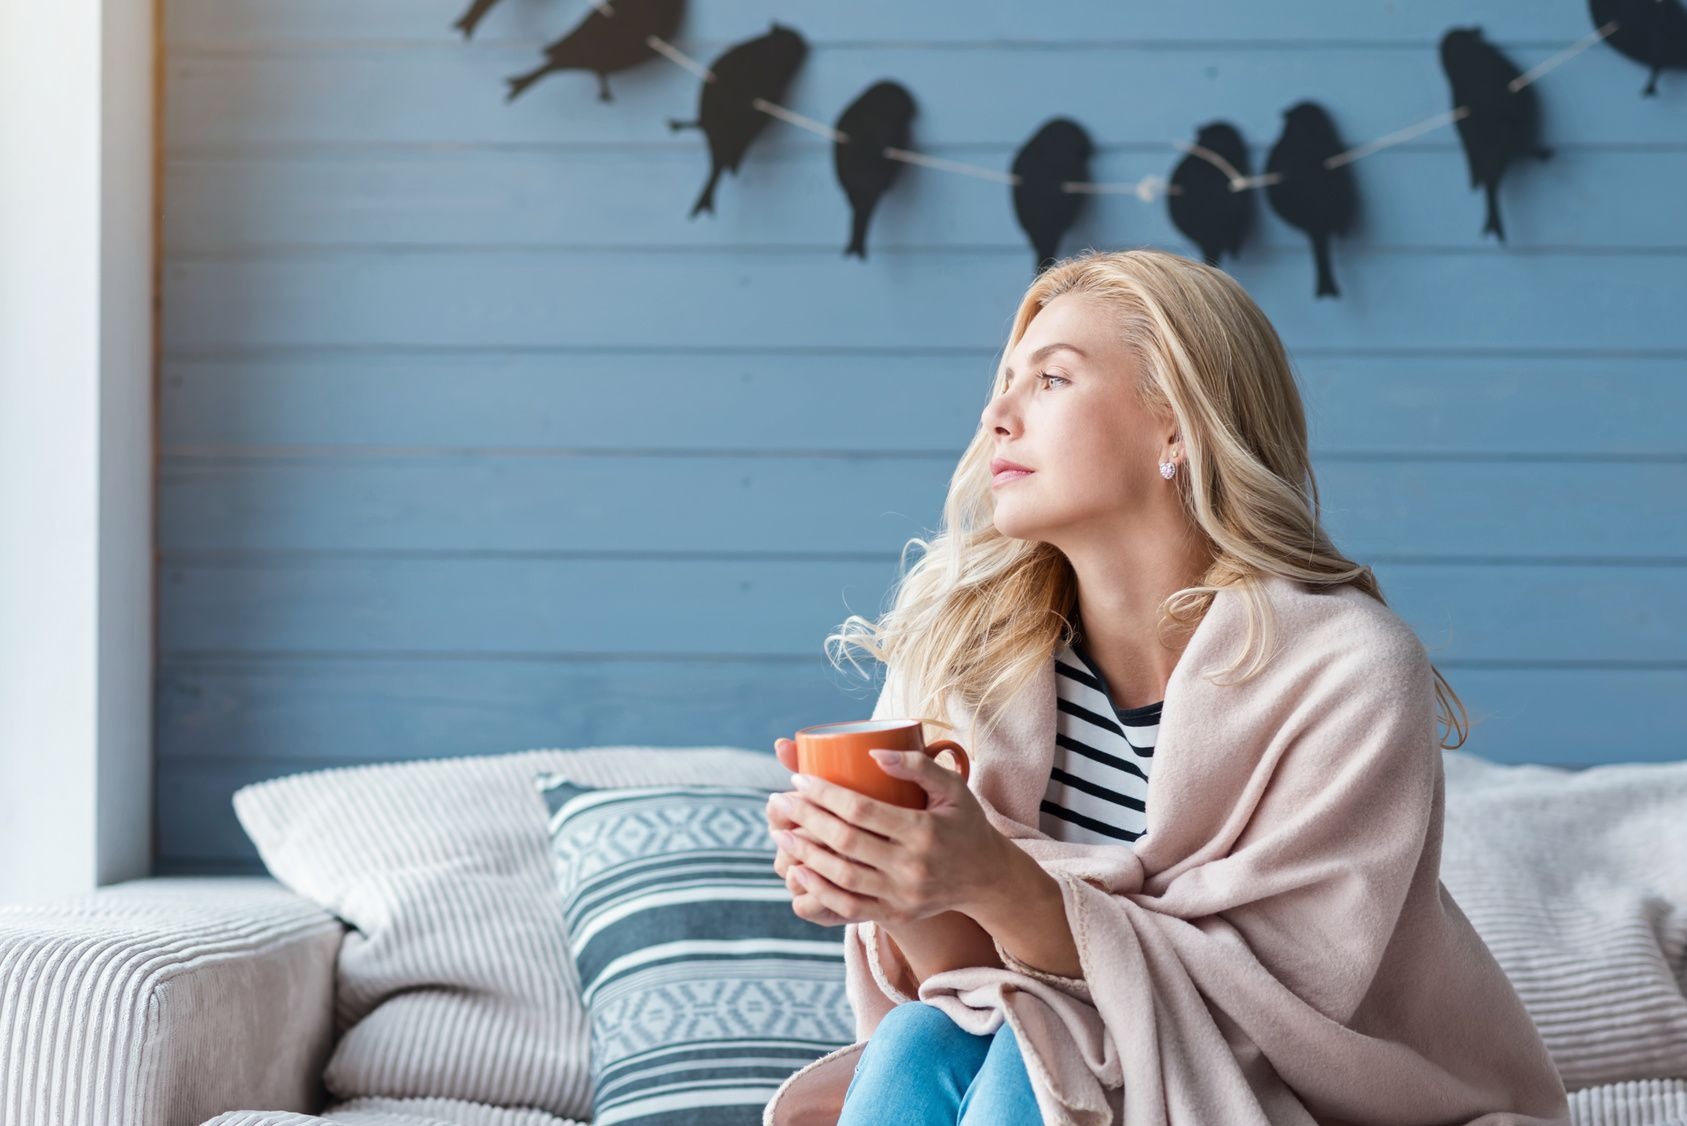 Blond woman sitting on sofa with cup